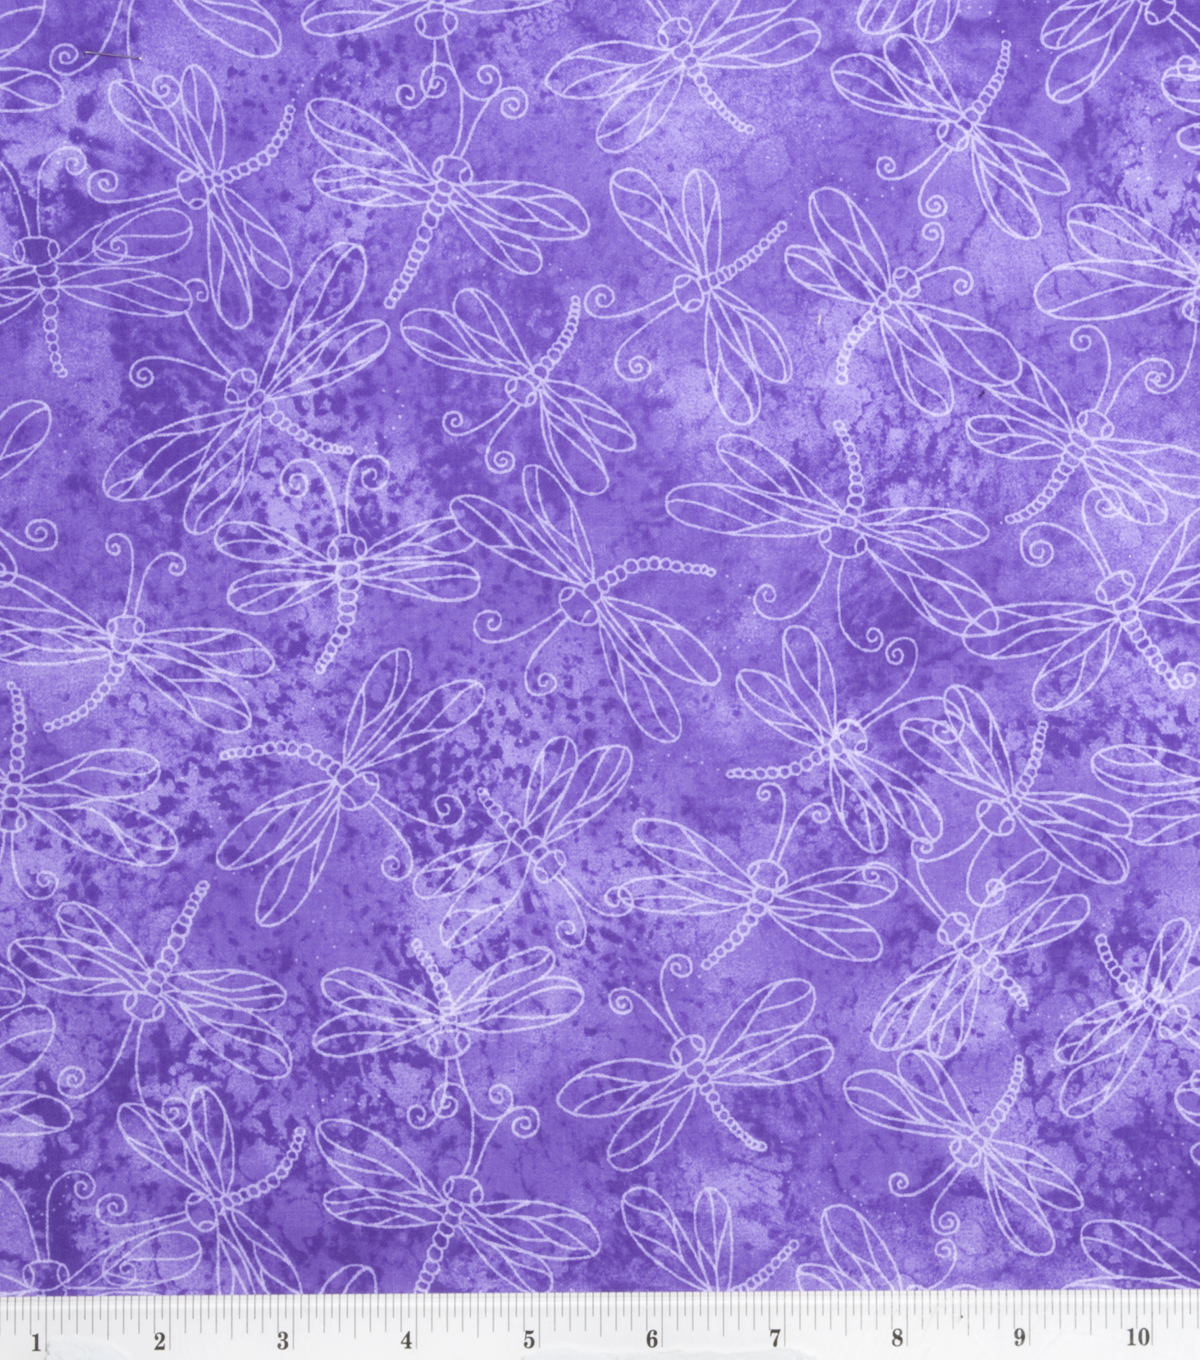 Keepsake Calico Fabric -Sundrenched Dragonfly on Lavender